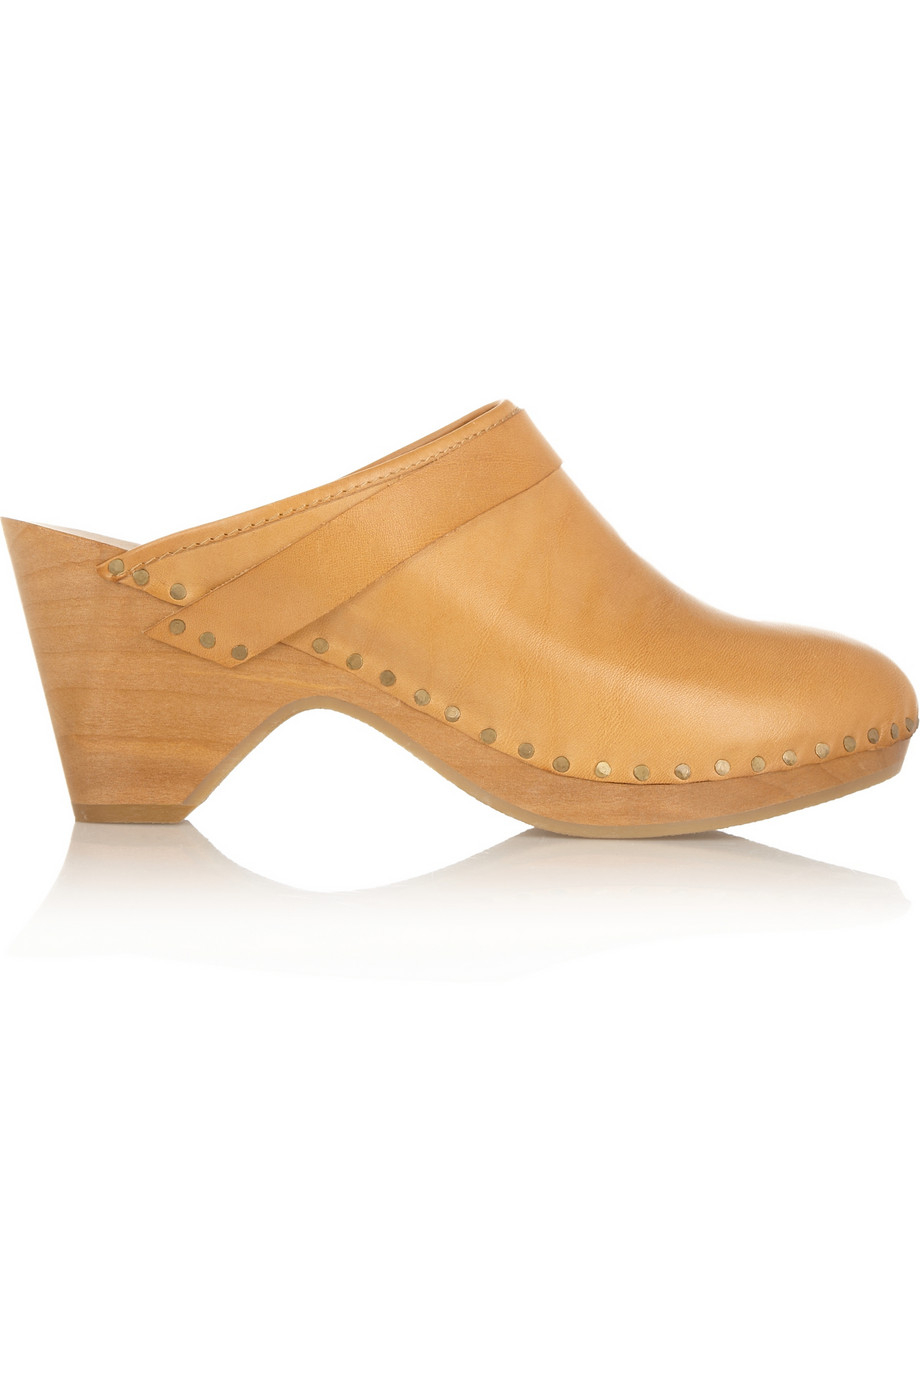 Lyst - Isabel Marant Towson Leather and Wooden Clogs in Orange e70dc757f